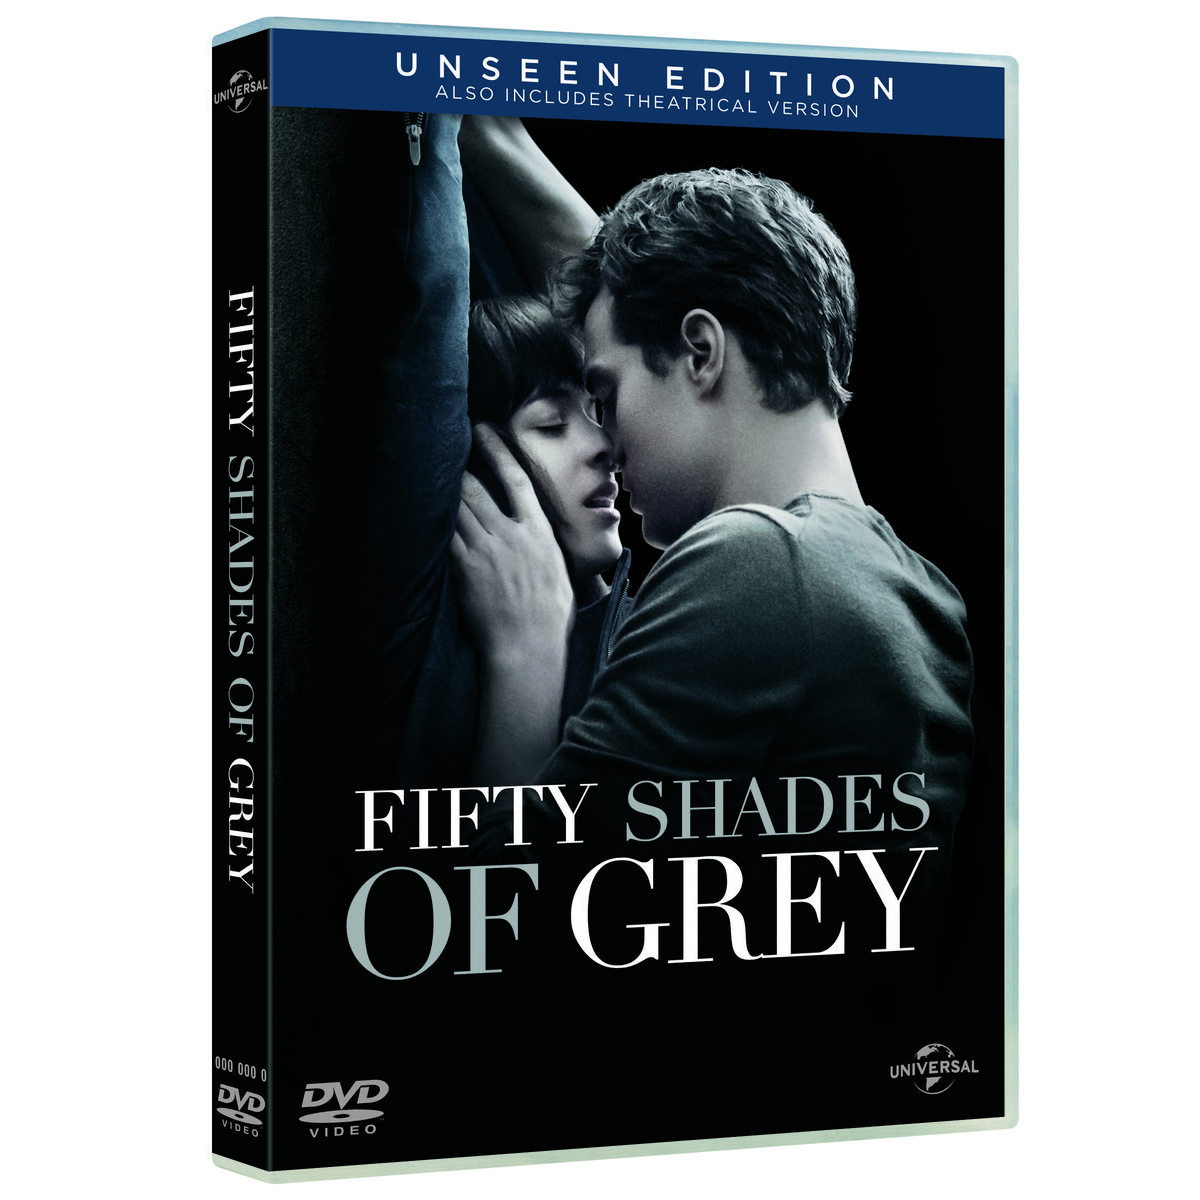 DVD - Fifty Shades of Grey - The Unseen Edition